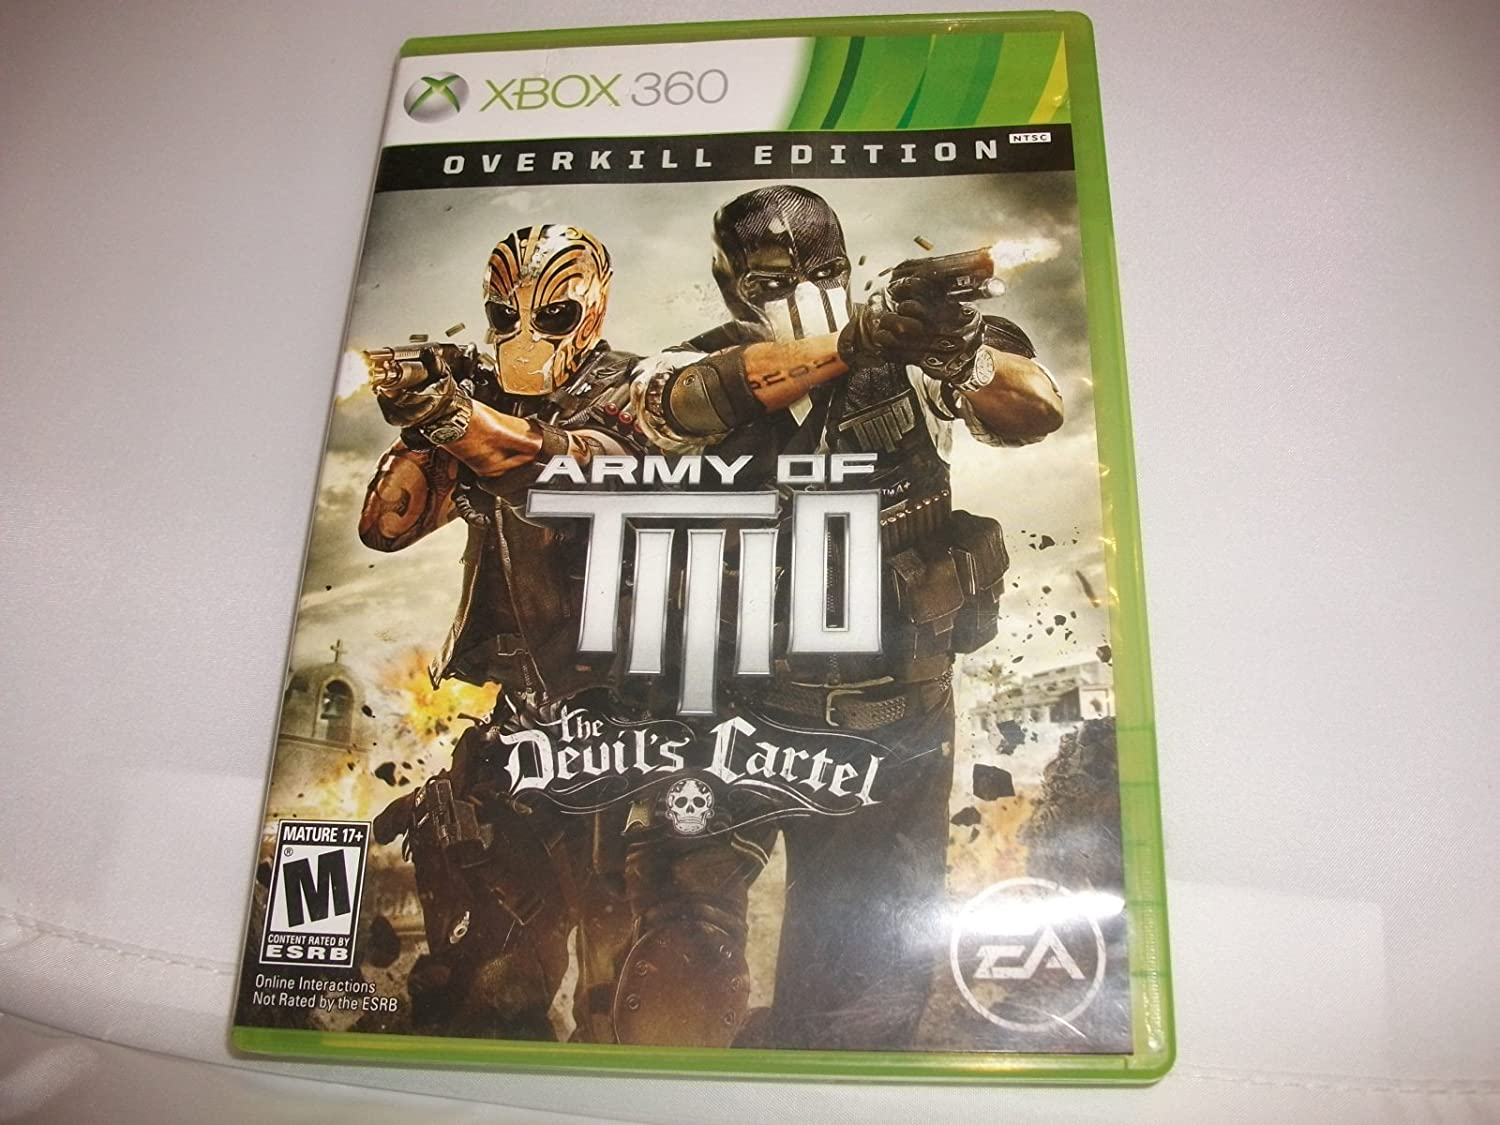 Amazon.com: Army of TWO The Devils Cartel - Xbox 360 ...